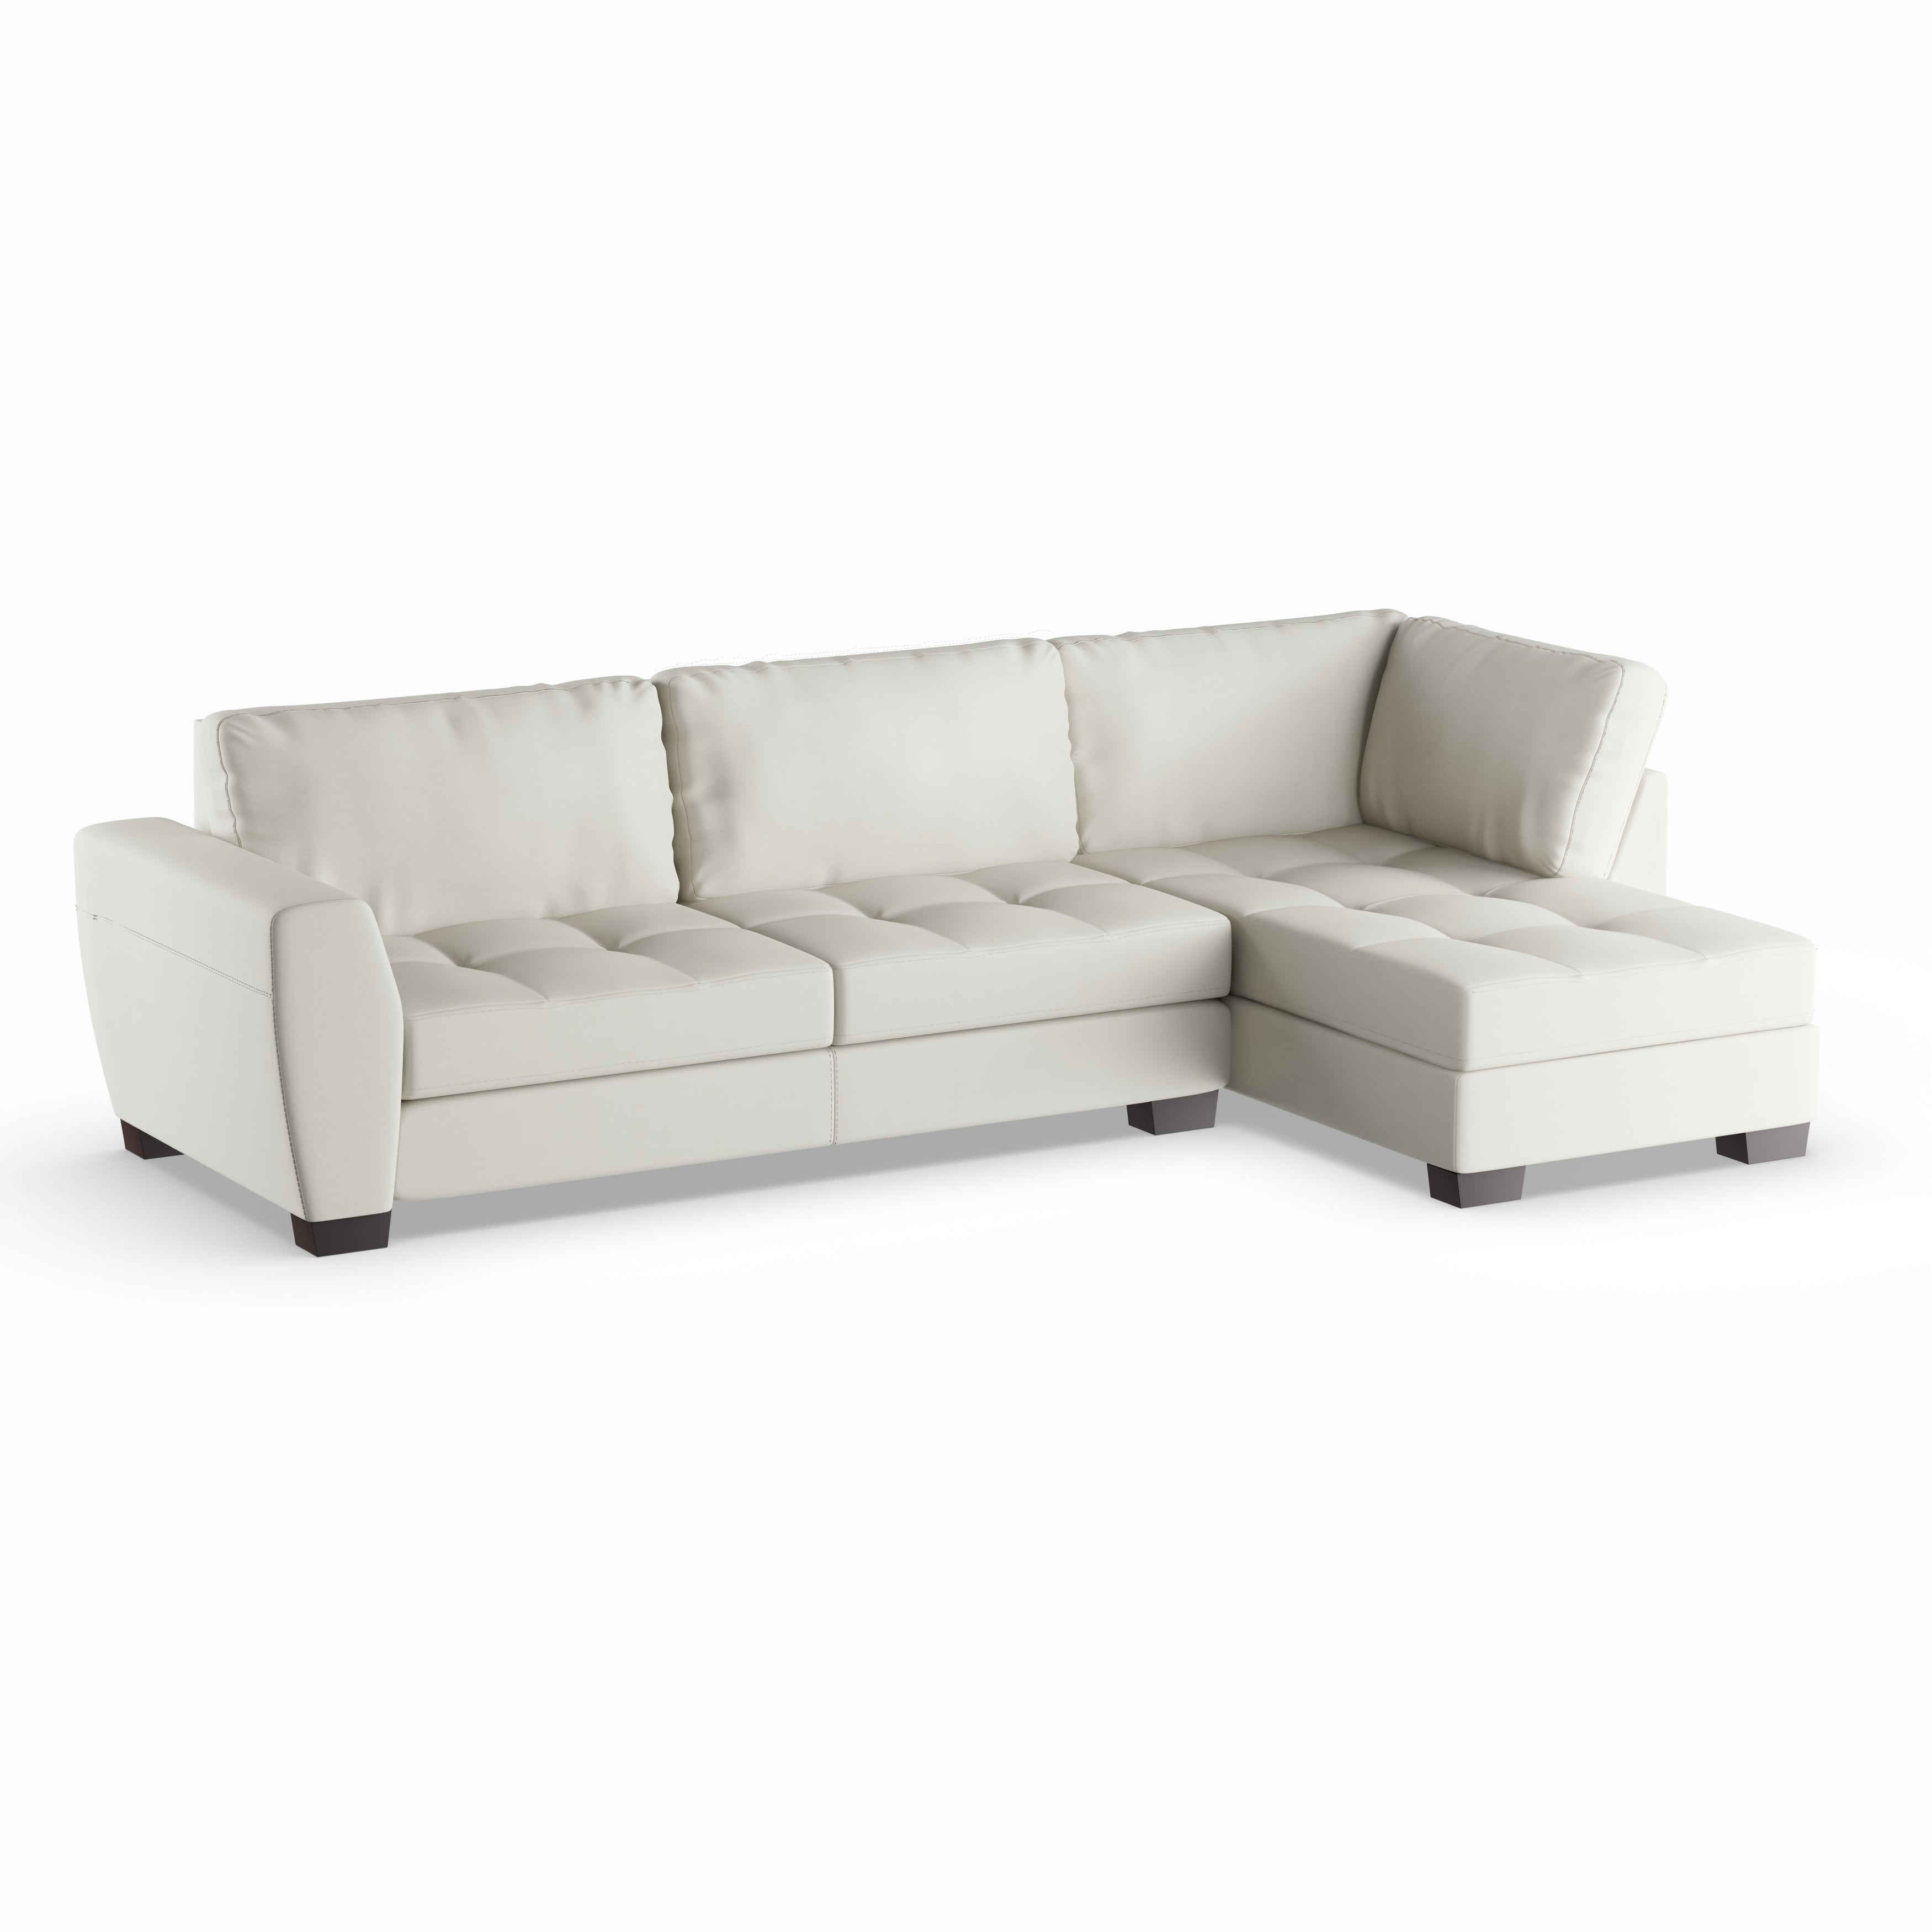 Maison Rouge Lee White Leather Modern Sectional Sofa Set With Right Facing Chaise Free Shipping Today 20543376